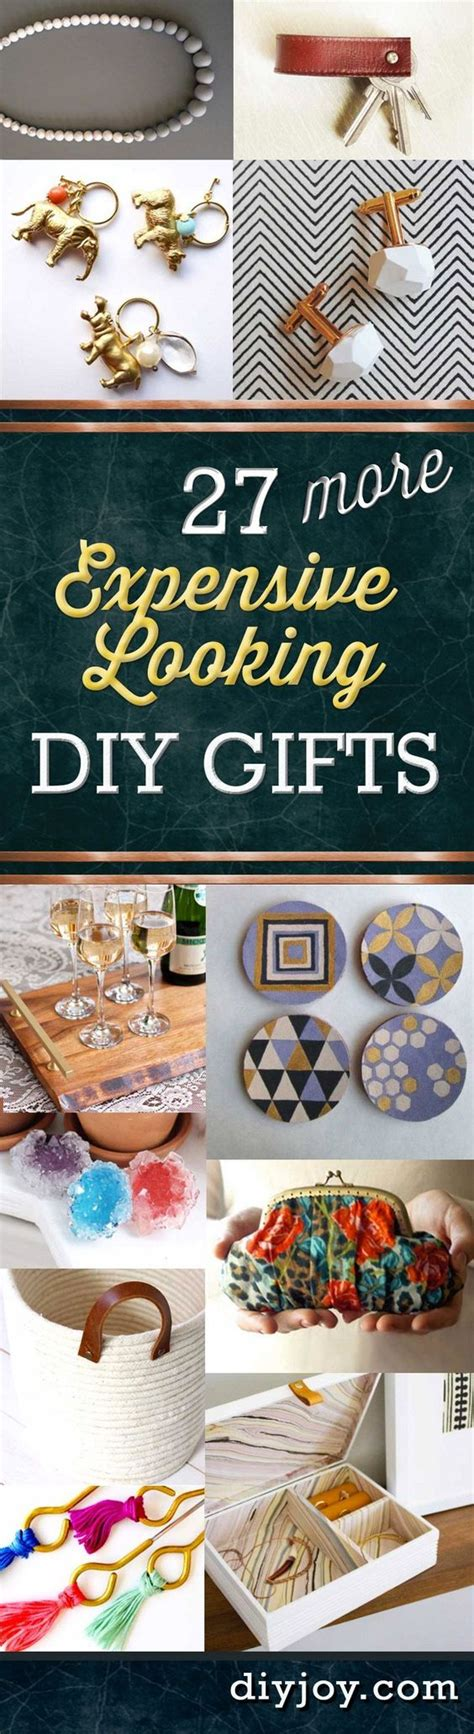 27 more expensive looking inexpensive gifts birthdays